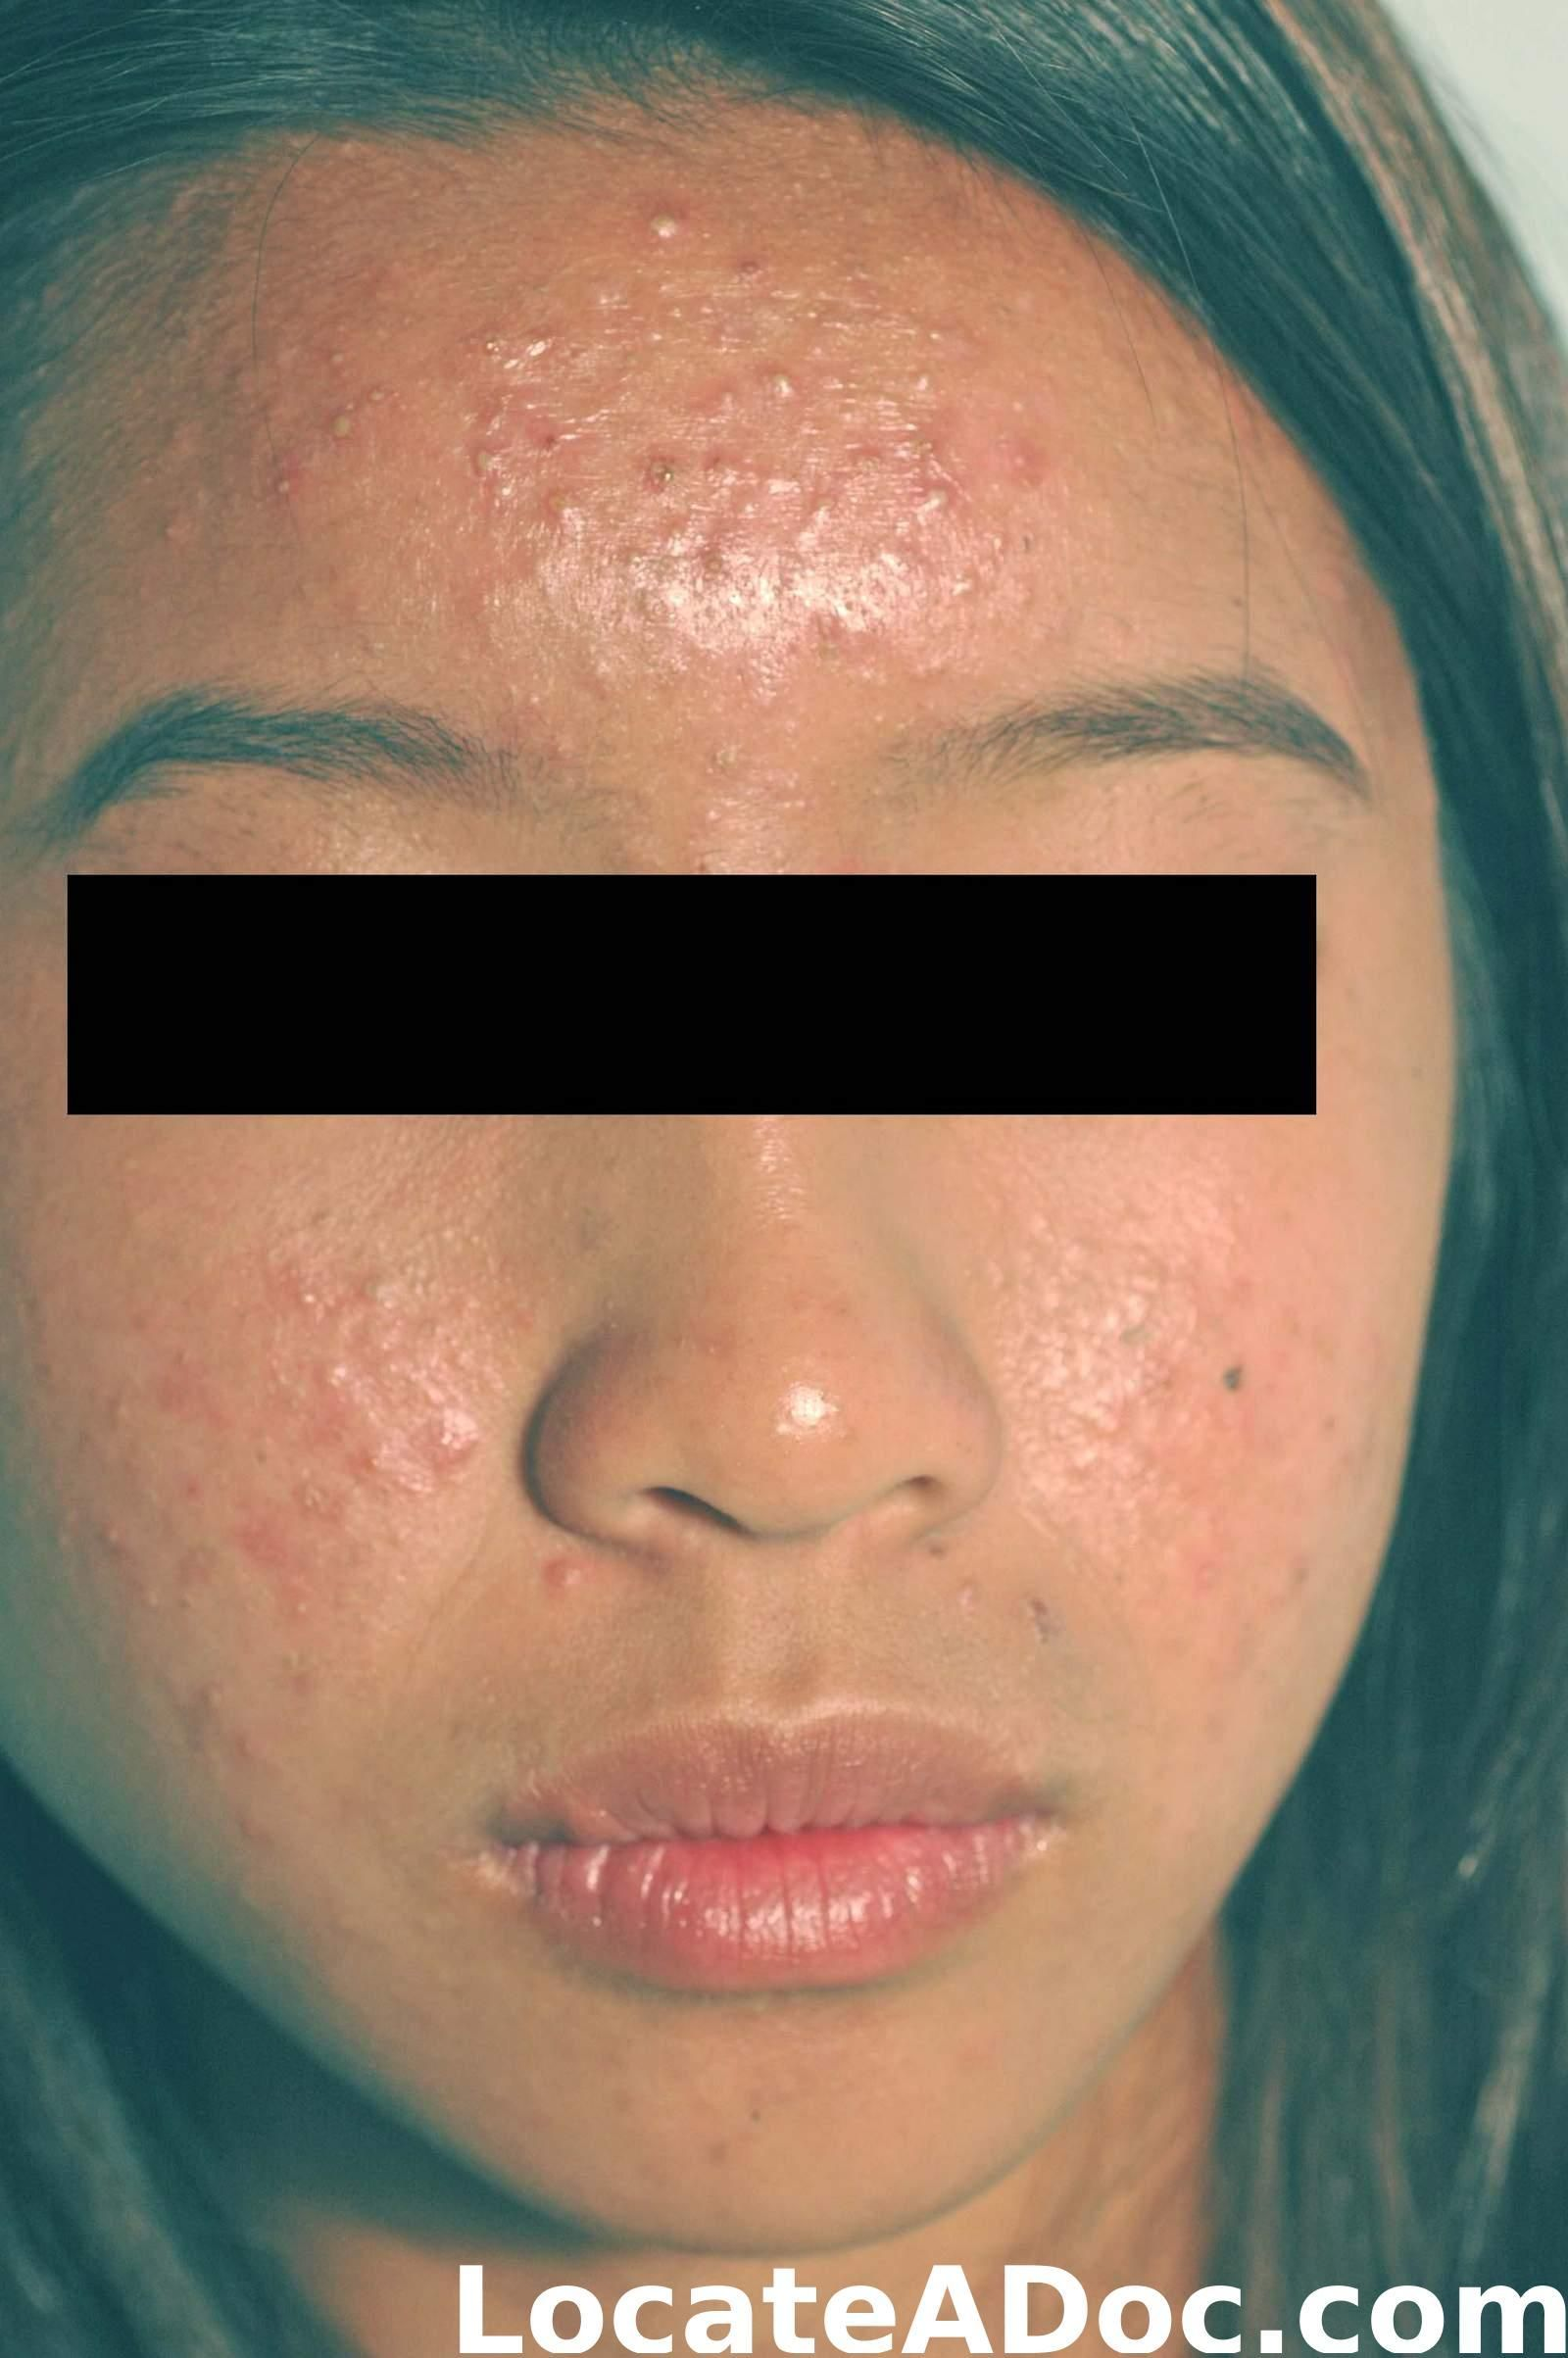 Why do many people have acne on the face? Causes and treatment methods 6